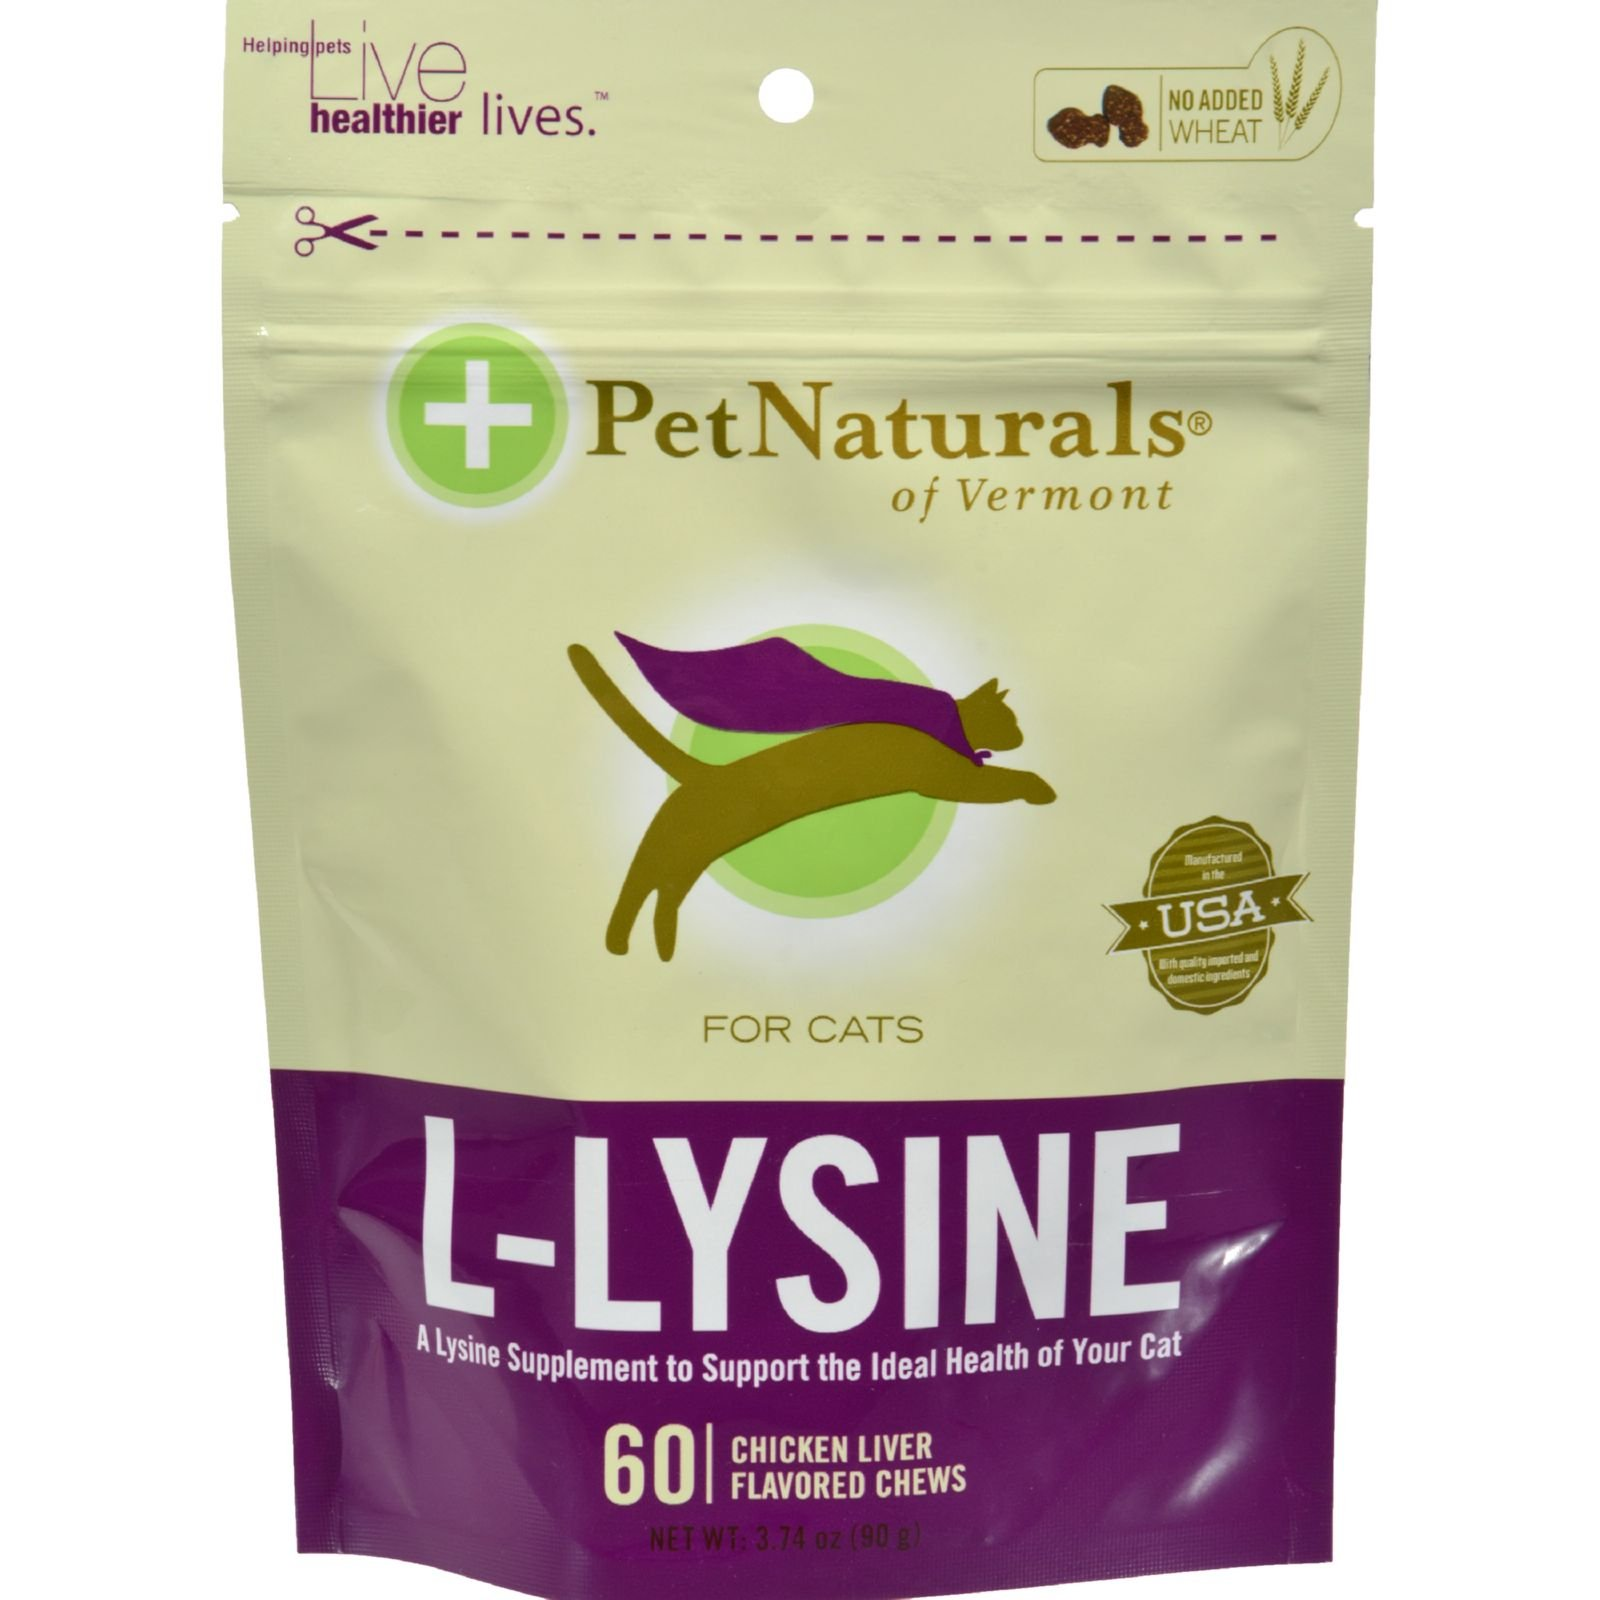 Pet Naturals of Vermont L-Lysine for Cats Chicken Liver - 60 Chewables (Pack of 2) by Pet Naturals